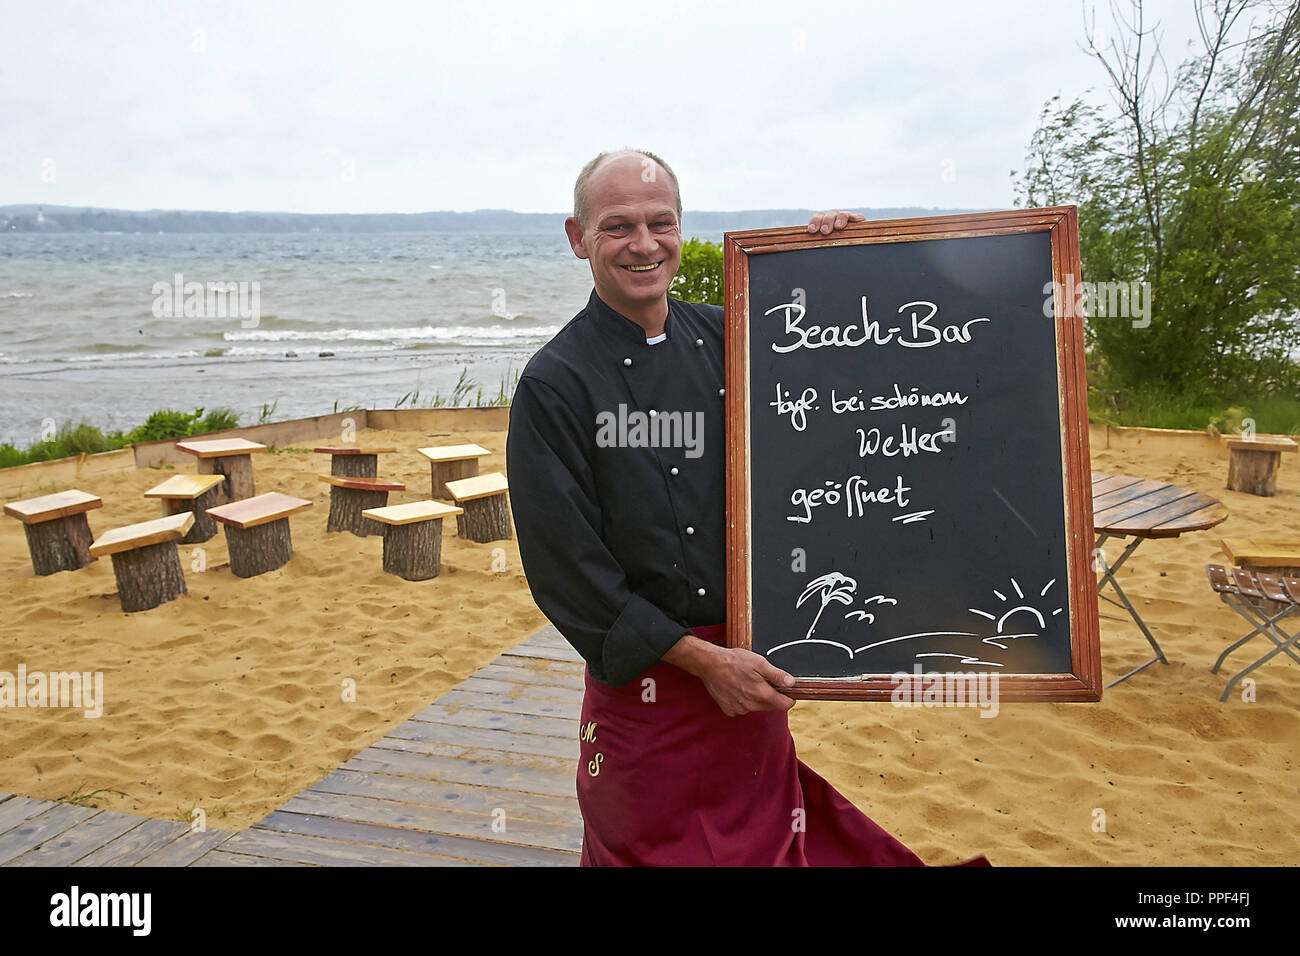 Restaurant Host Stock Photos Amp Restaurant Host Stock